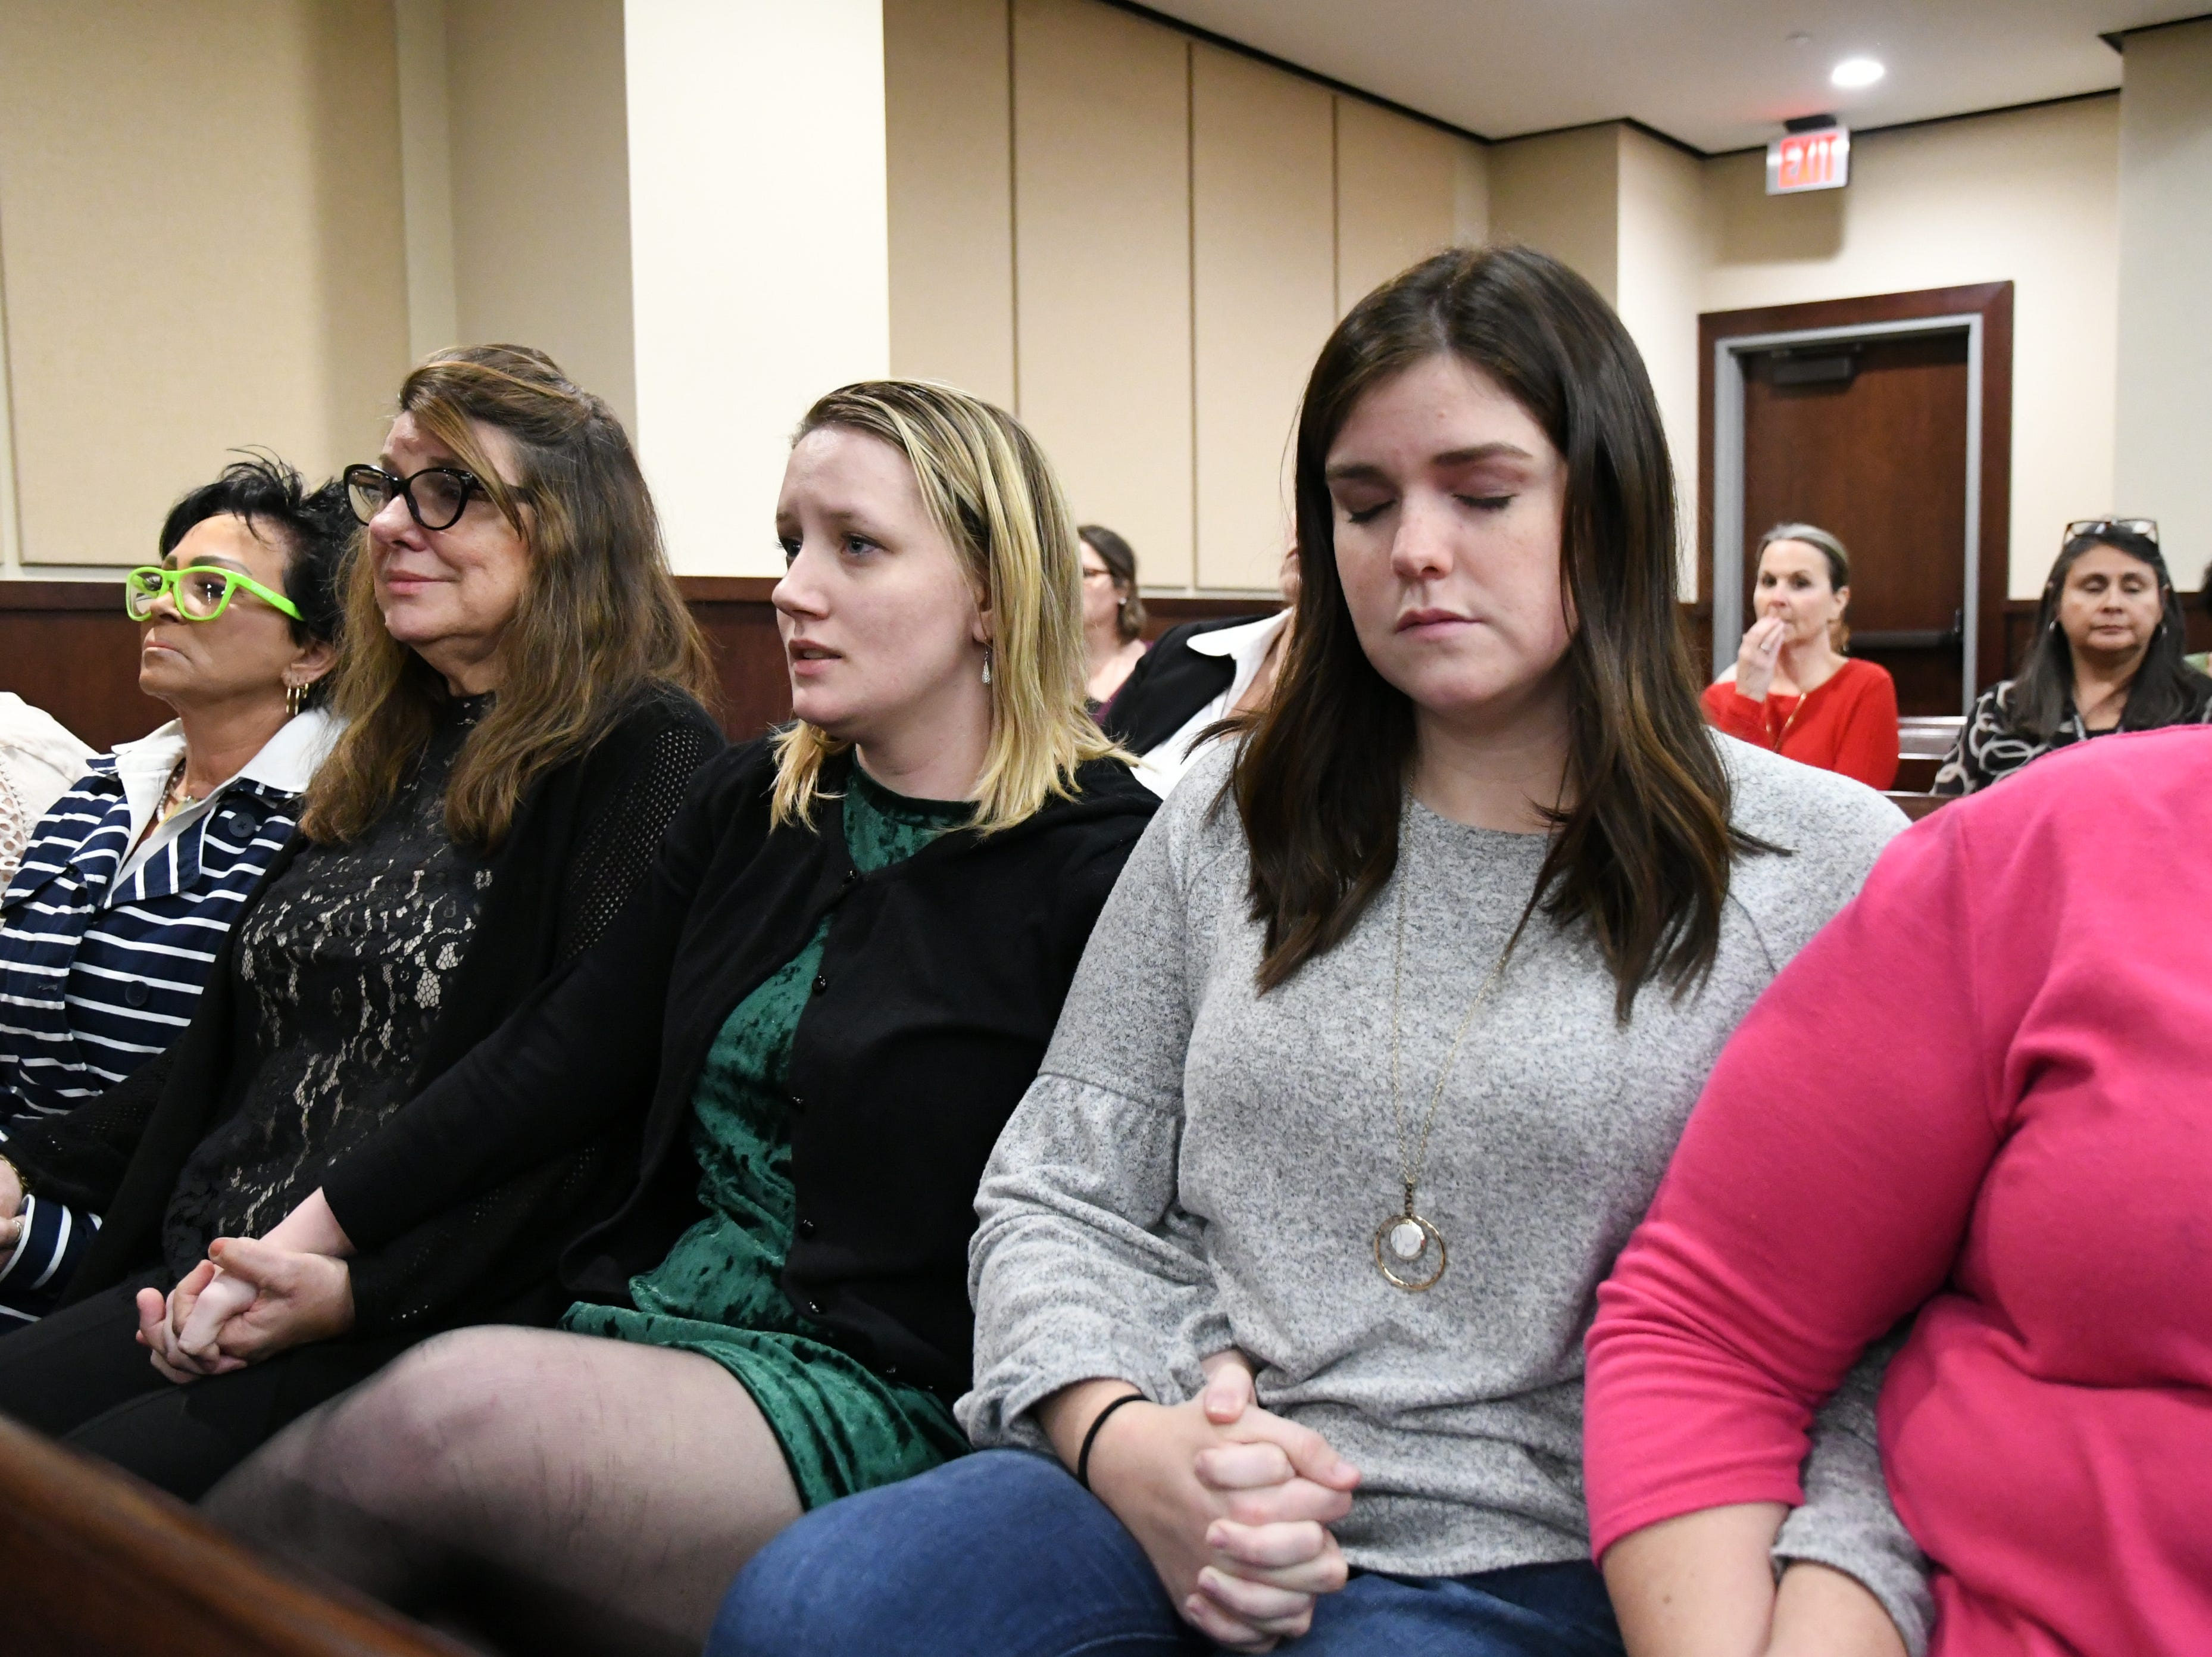 Family and friends of Mike Williams, the man who was shot and killed by Brian Winchester, his high school best friend, hold hands while they await the verdicts in the trial against Denise Williams, the former wife of Mike Williams, Friday, Dec. 14, 2018.